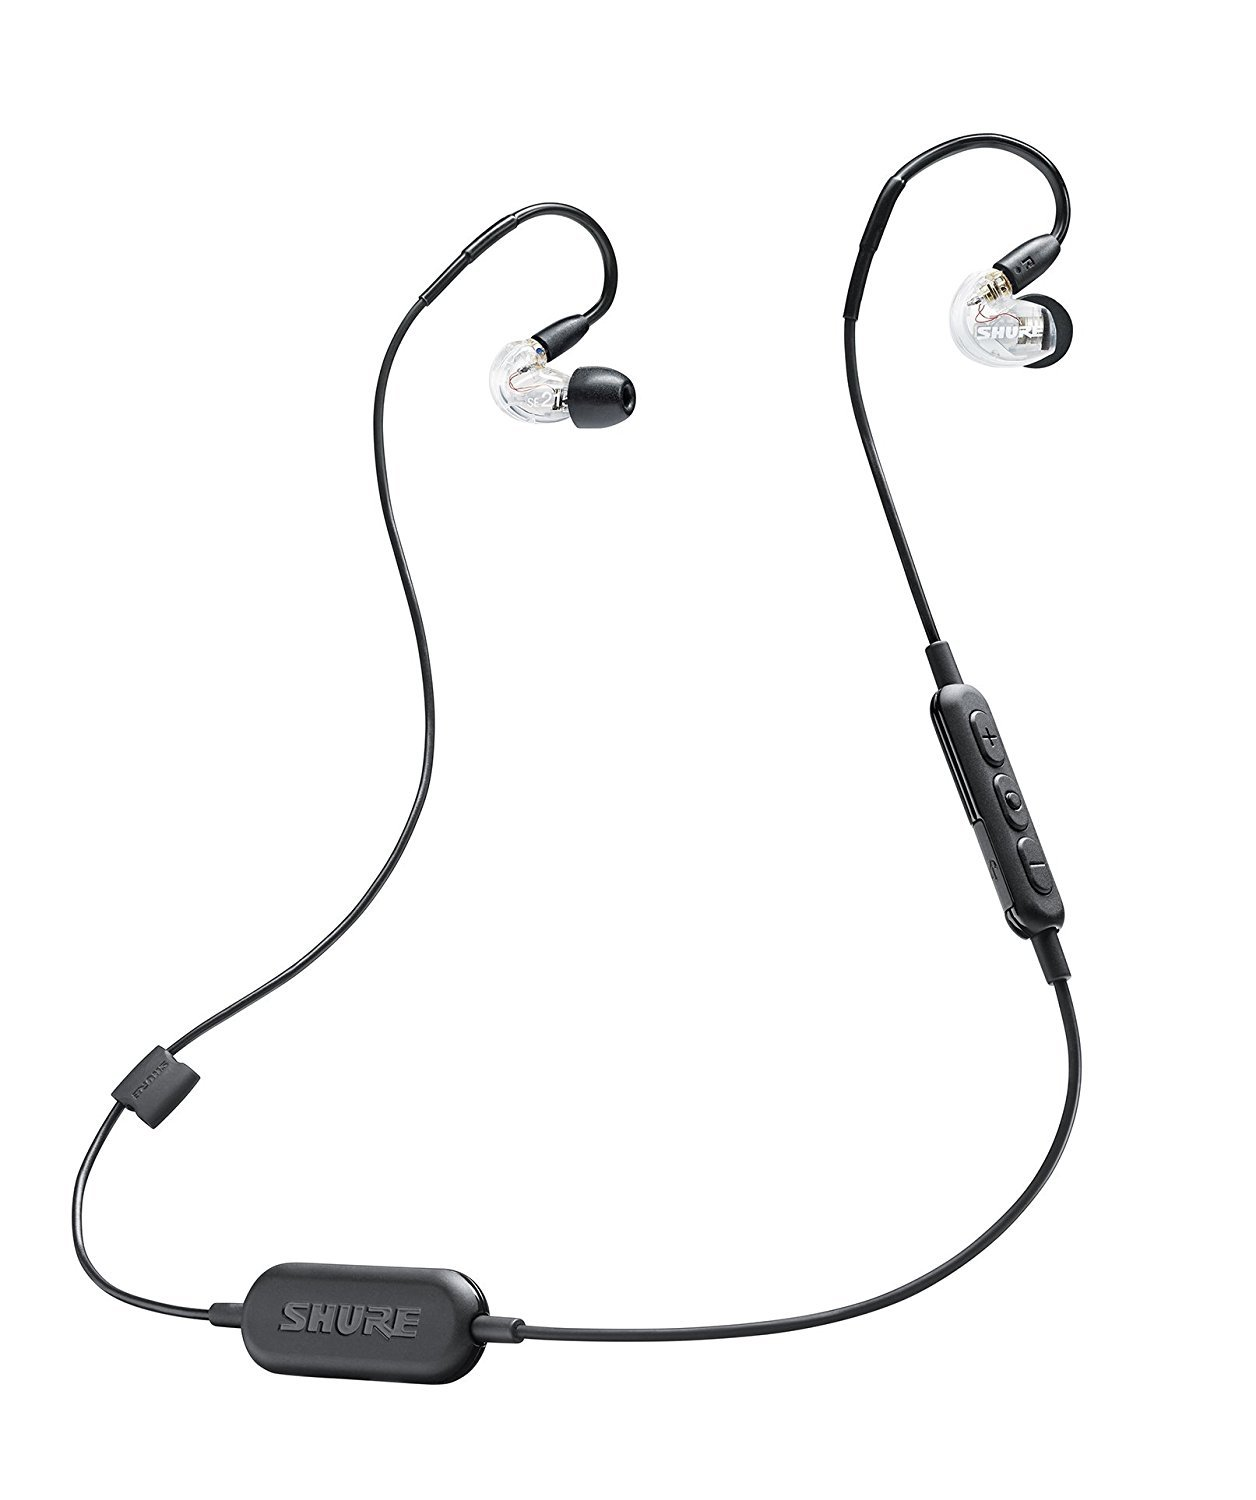 SHURE High Sound Insulation WIRELESS Earphone SE215 (CLEAR)【Japan Domestic genuine products】